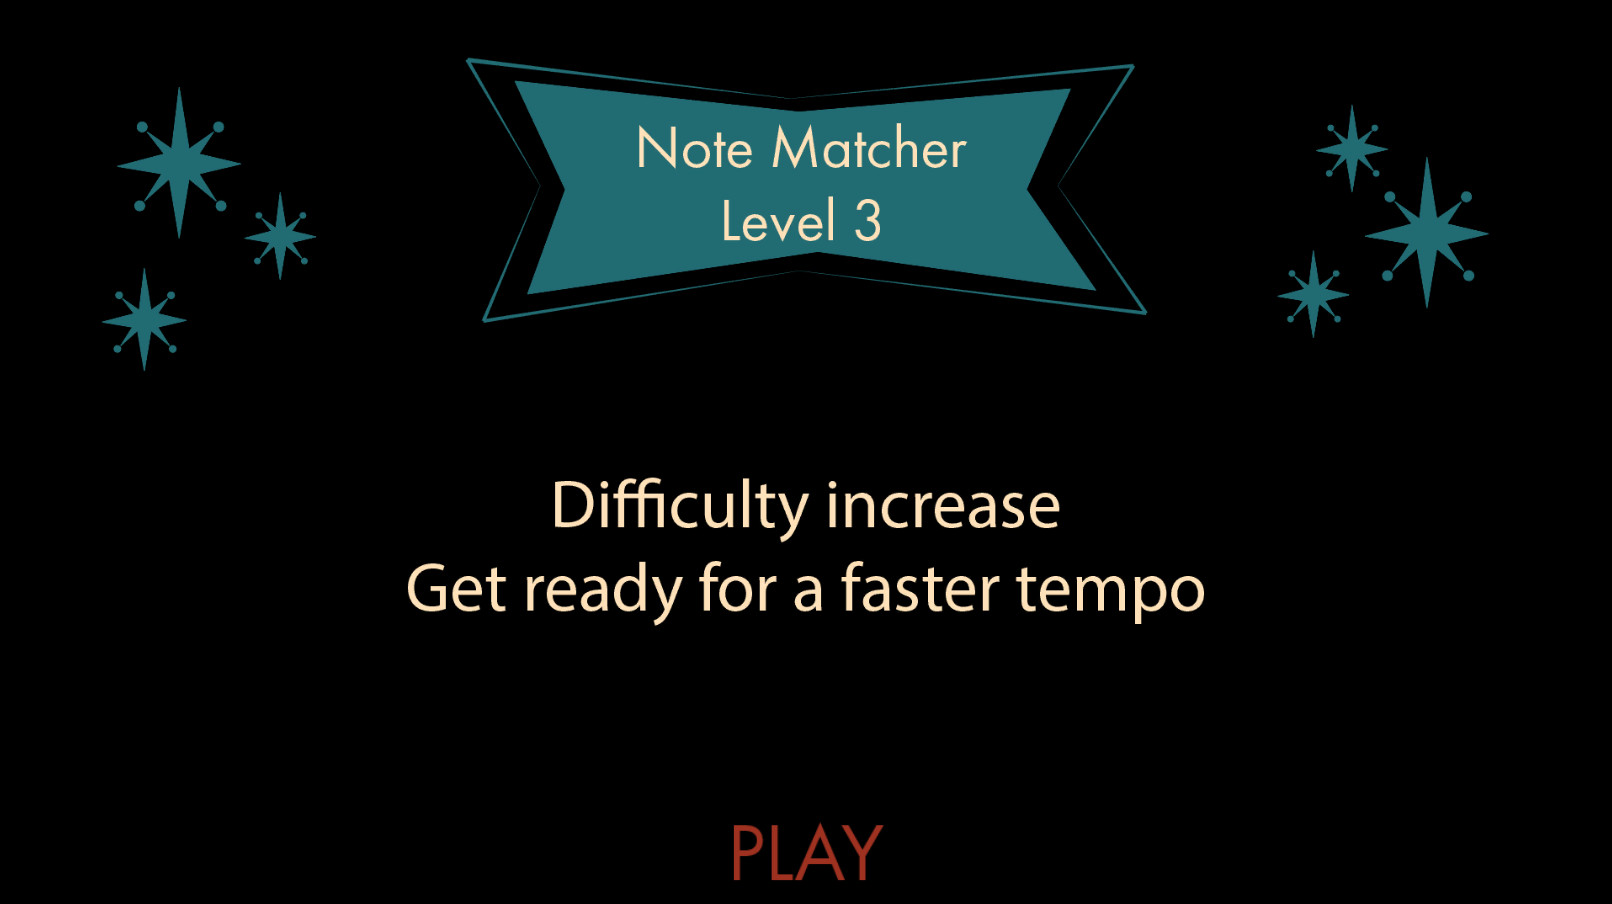 By now, the player should know how to play this type of mini game. Instead of an explanation, there is a warning that says there is a faster tempo so they are prepared.